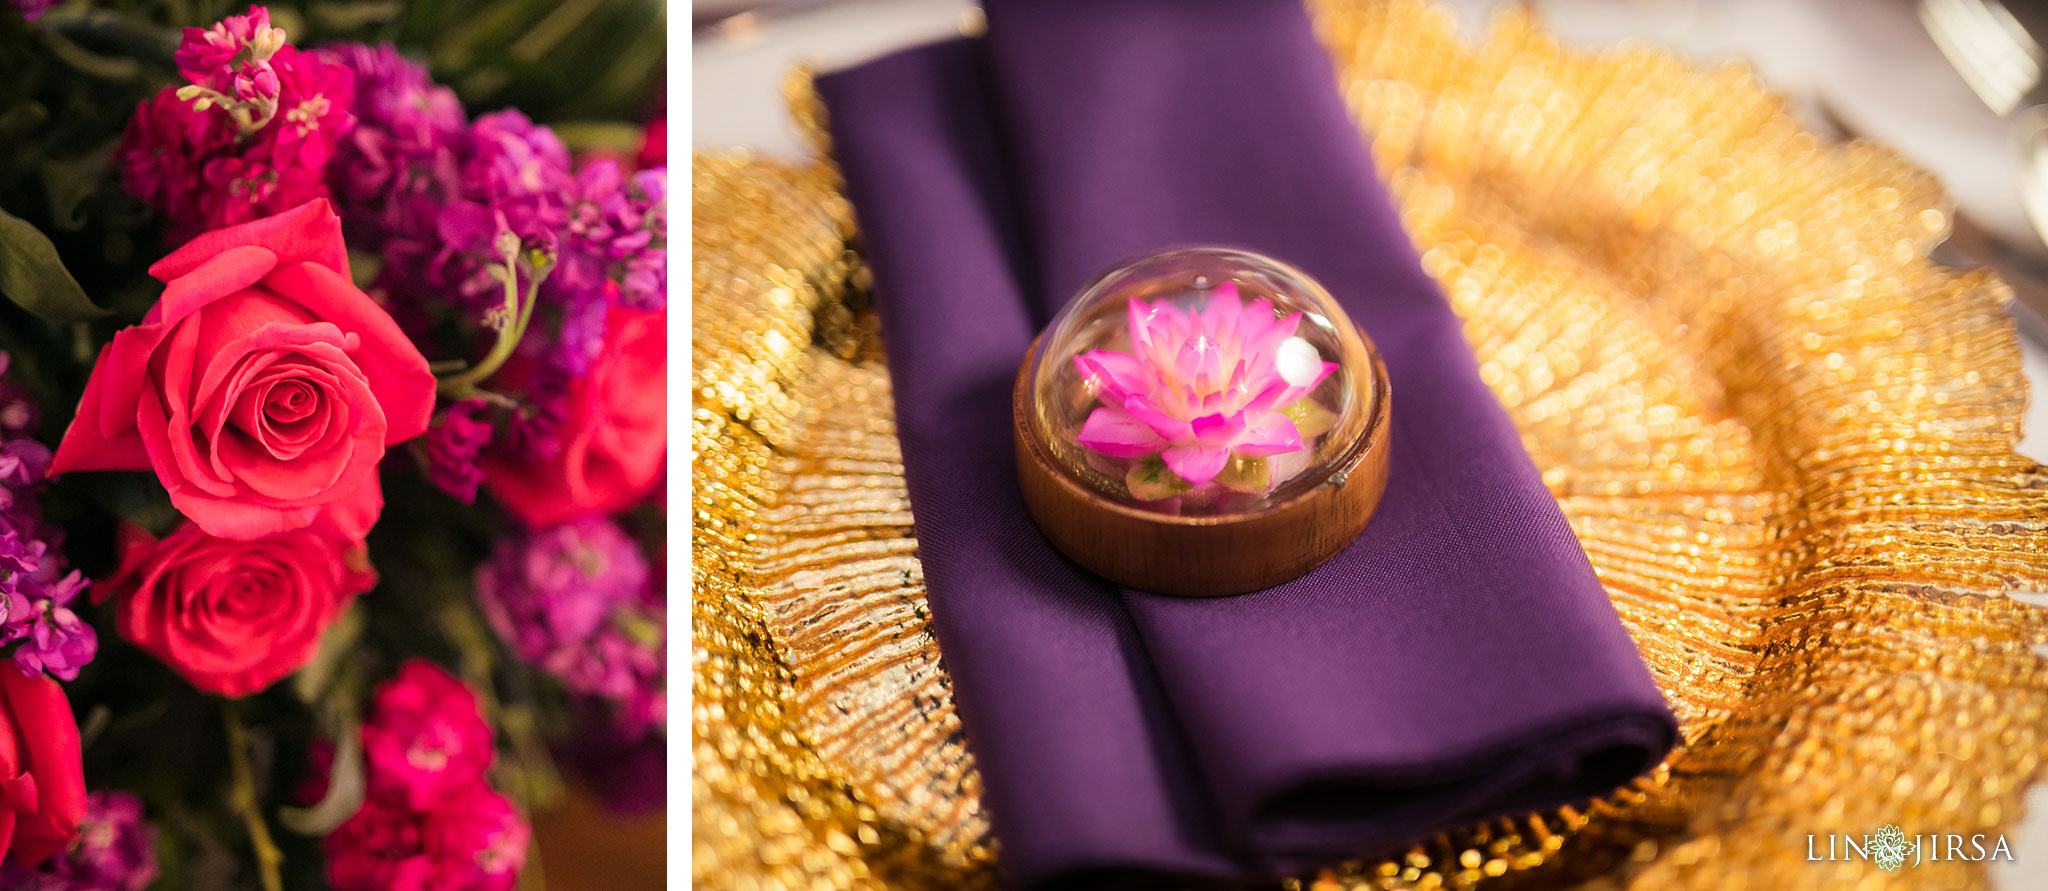 27 the ebell of los angeles indian wedding photography